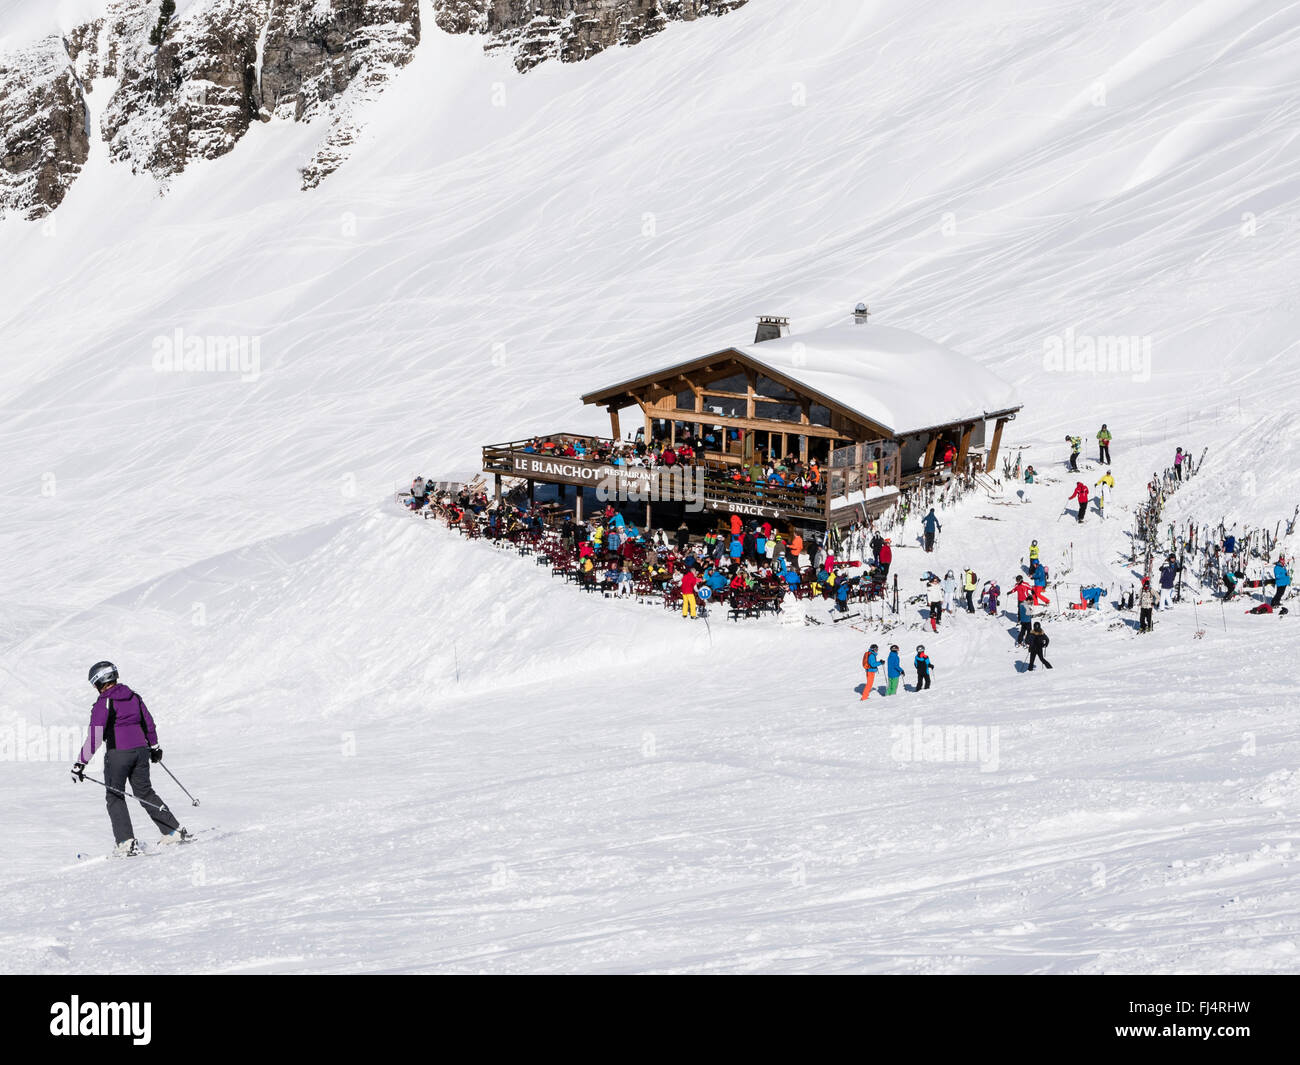 Le Blanchot Alpine ski restaurant busy with skiers on snow slopes in Le Grand Massif ski area of French Alps. Flaine, Stock Photo